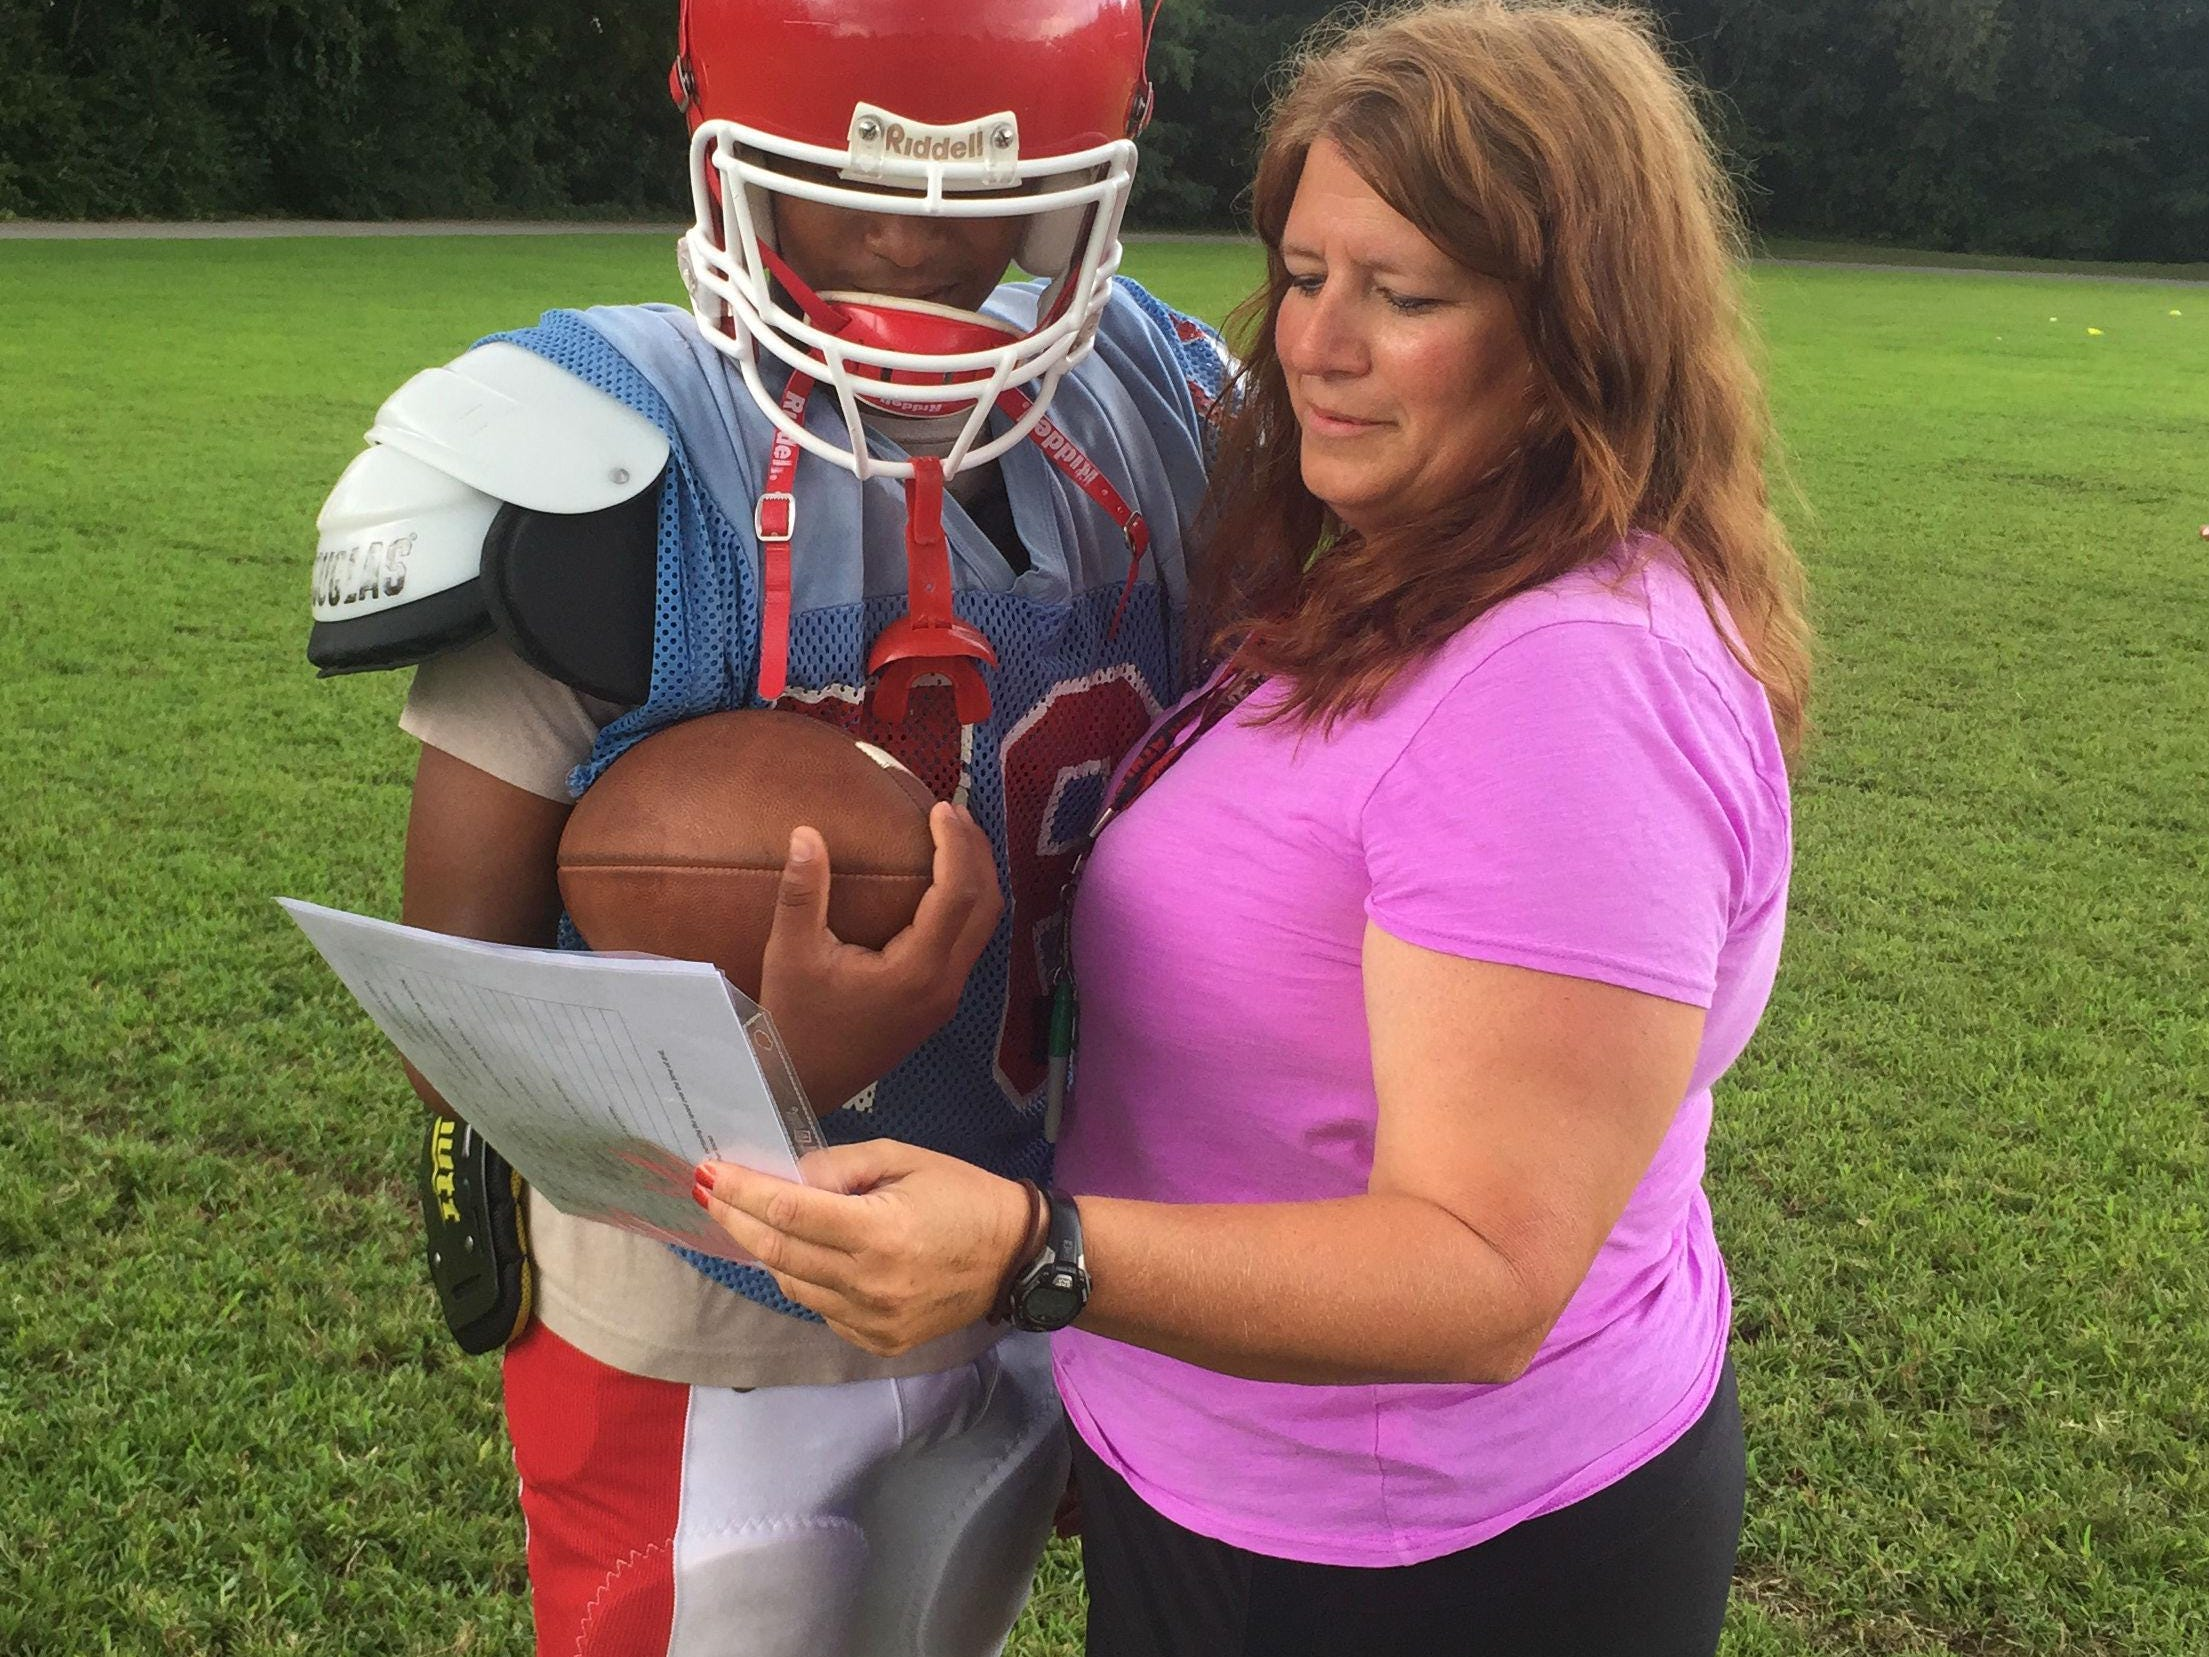 Glencliff quarterback Varon Solano consults with Colts assistant coach Lisa Limper.